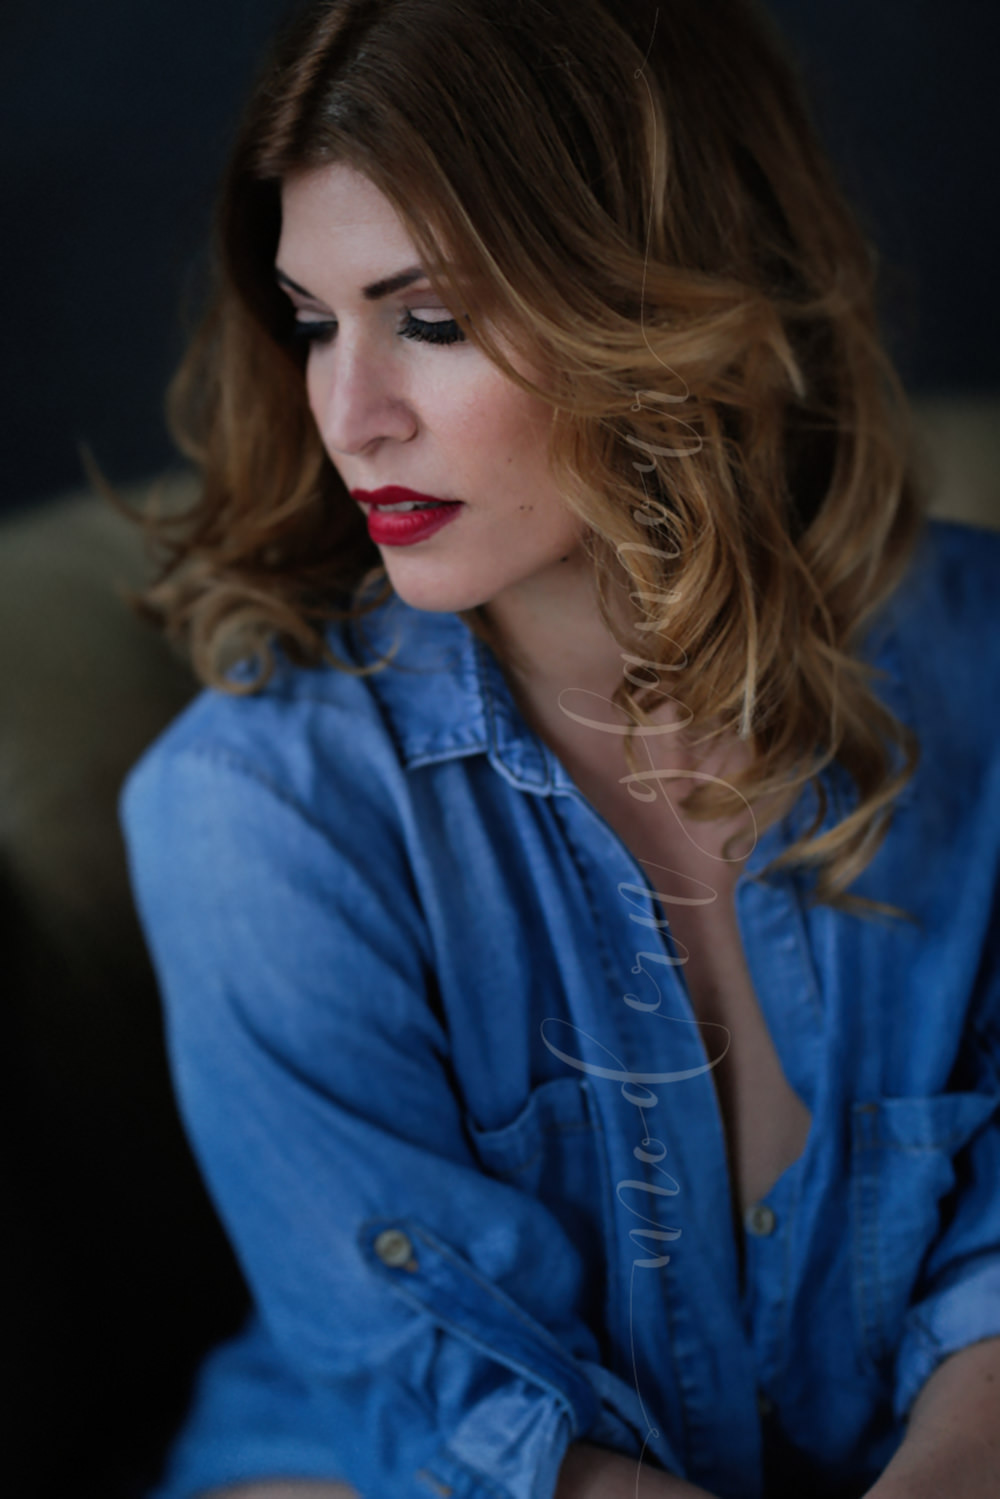 sensual red lip in contrast with casual denim shirt boudoir photography boston